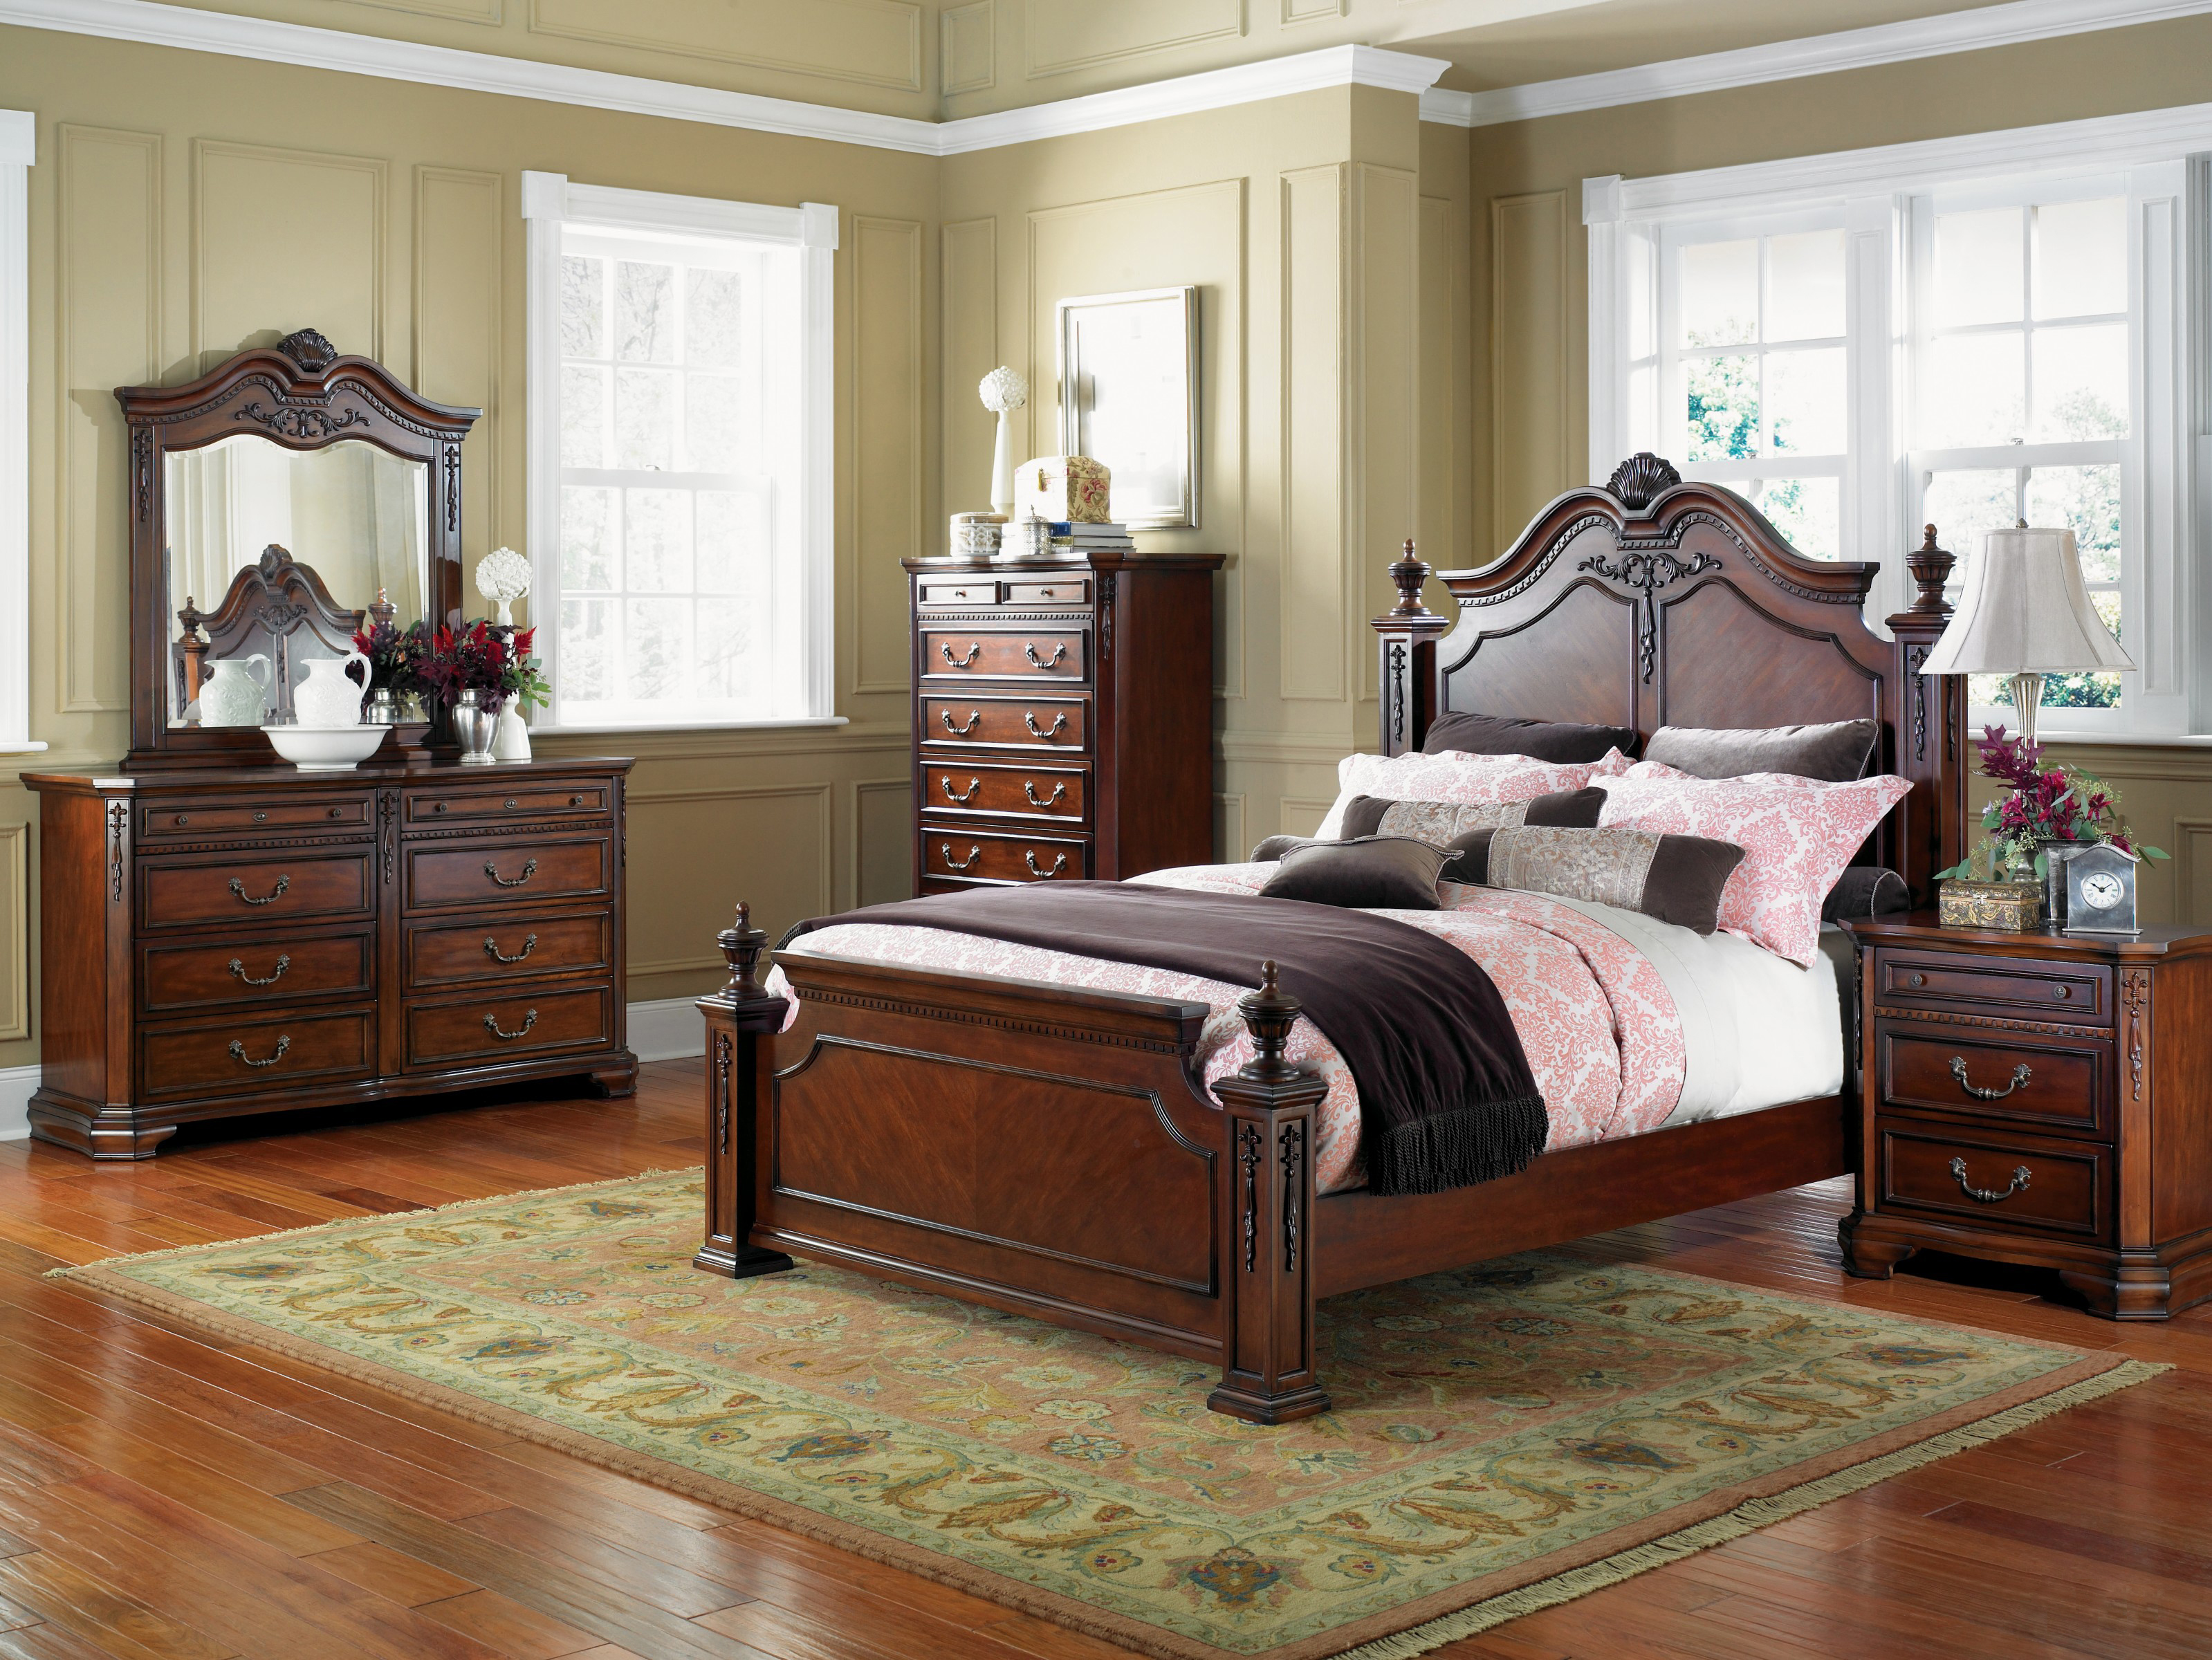 Bedroom furniture for Bedroom furnishings